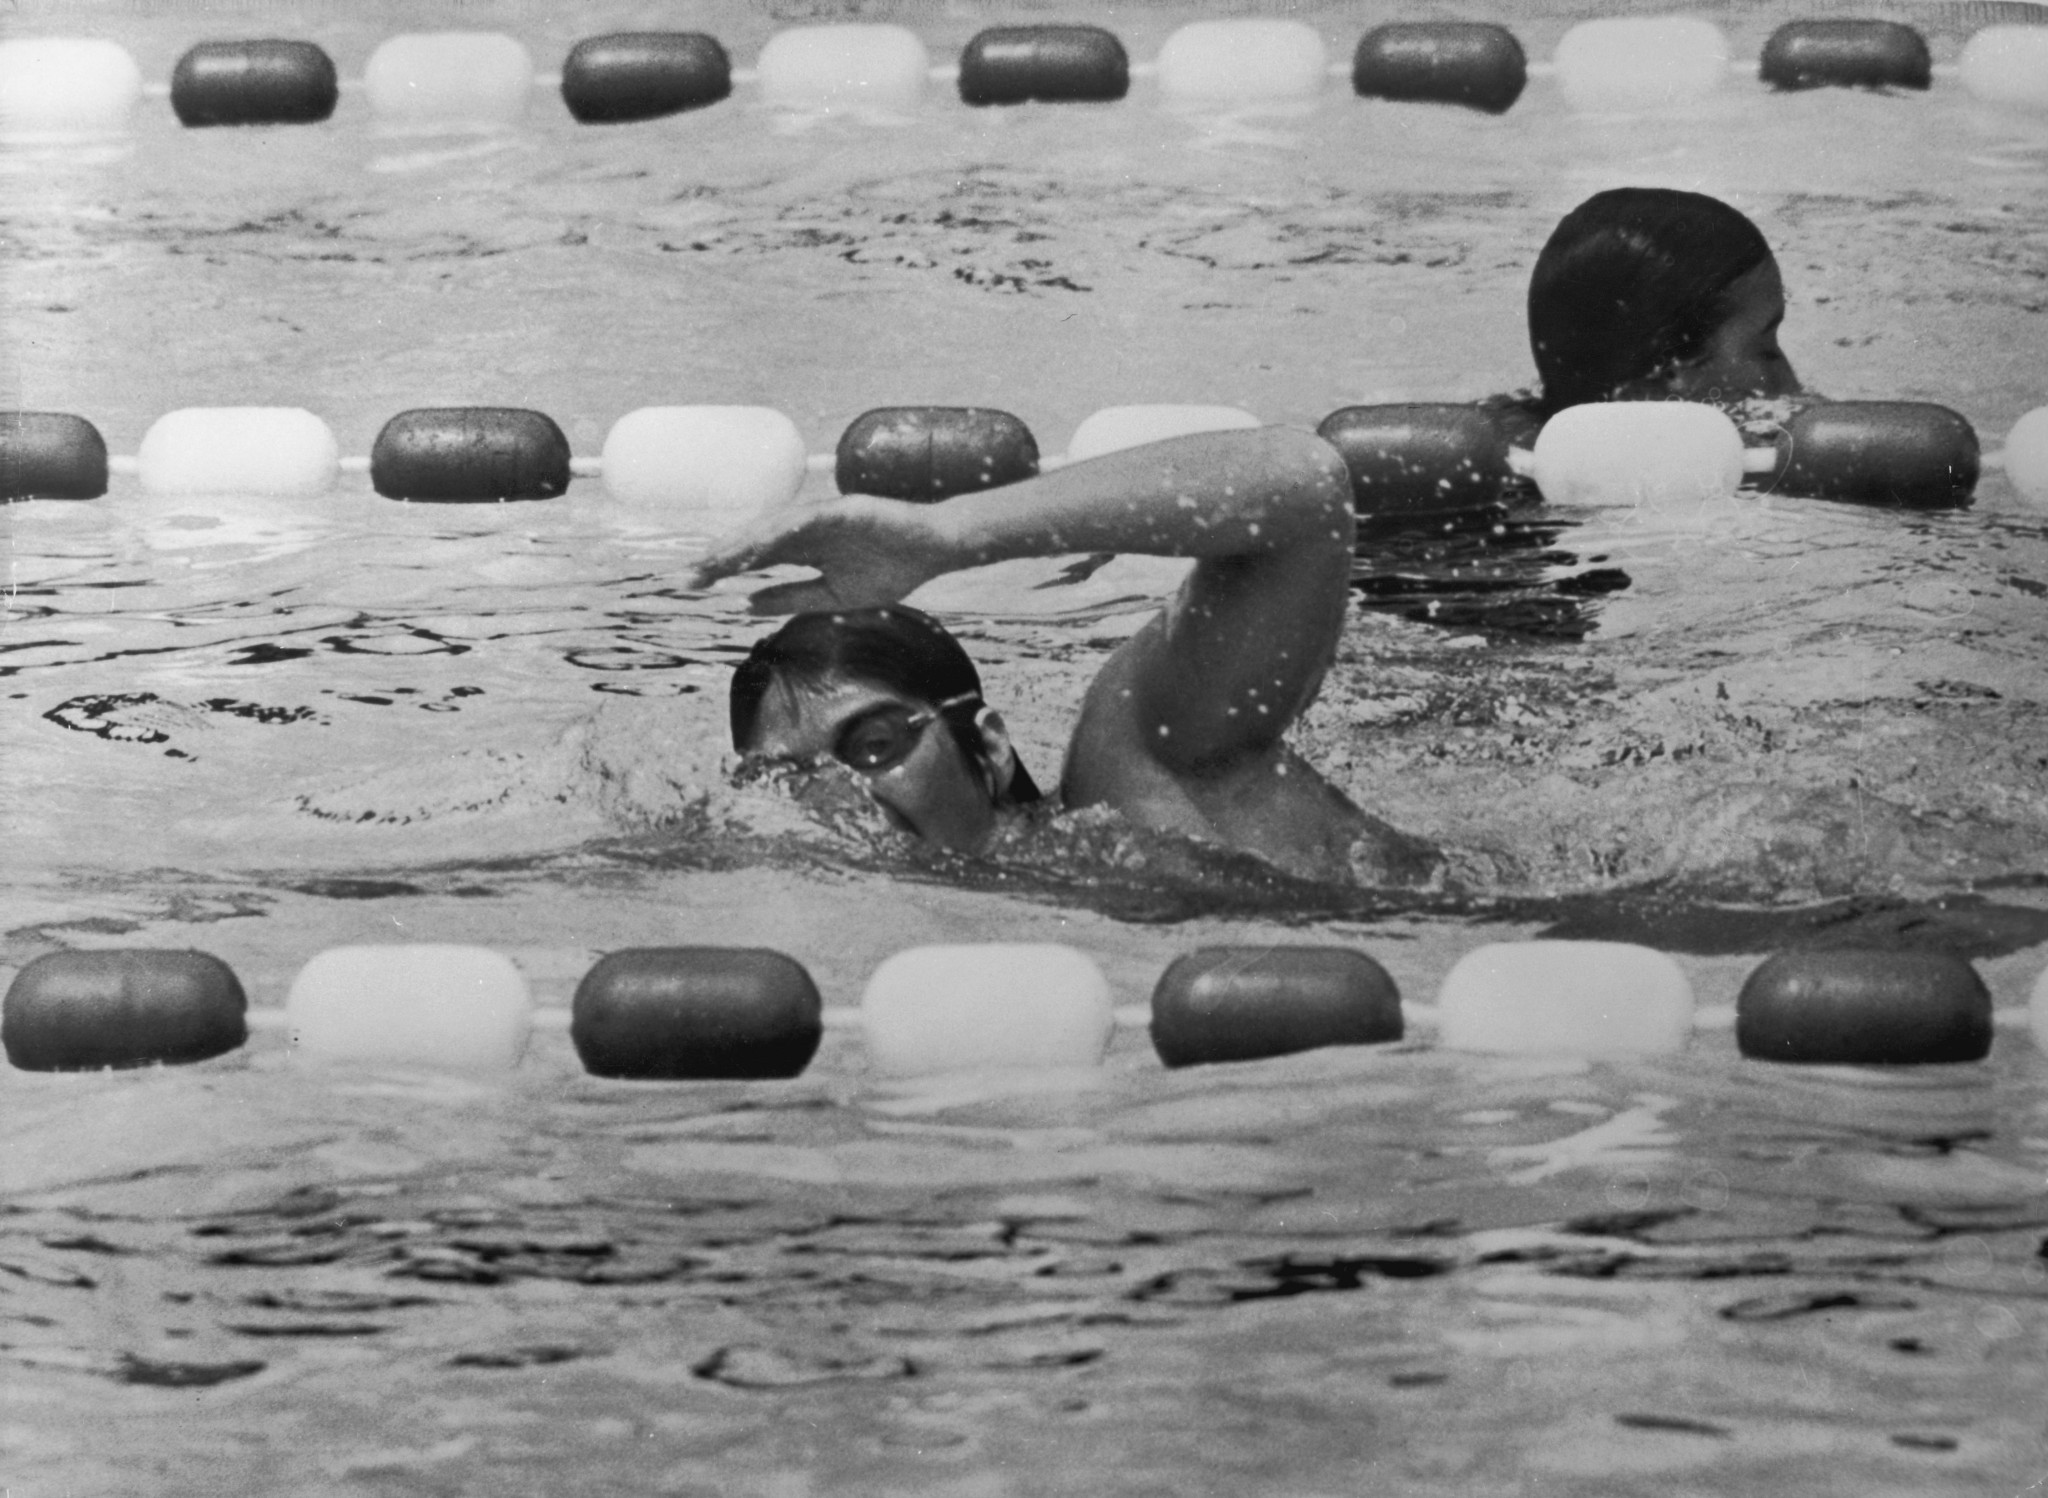 Australian swimmer Dawn Fraser was the undoubted star of Perth 1962 ©Getty Images